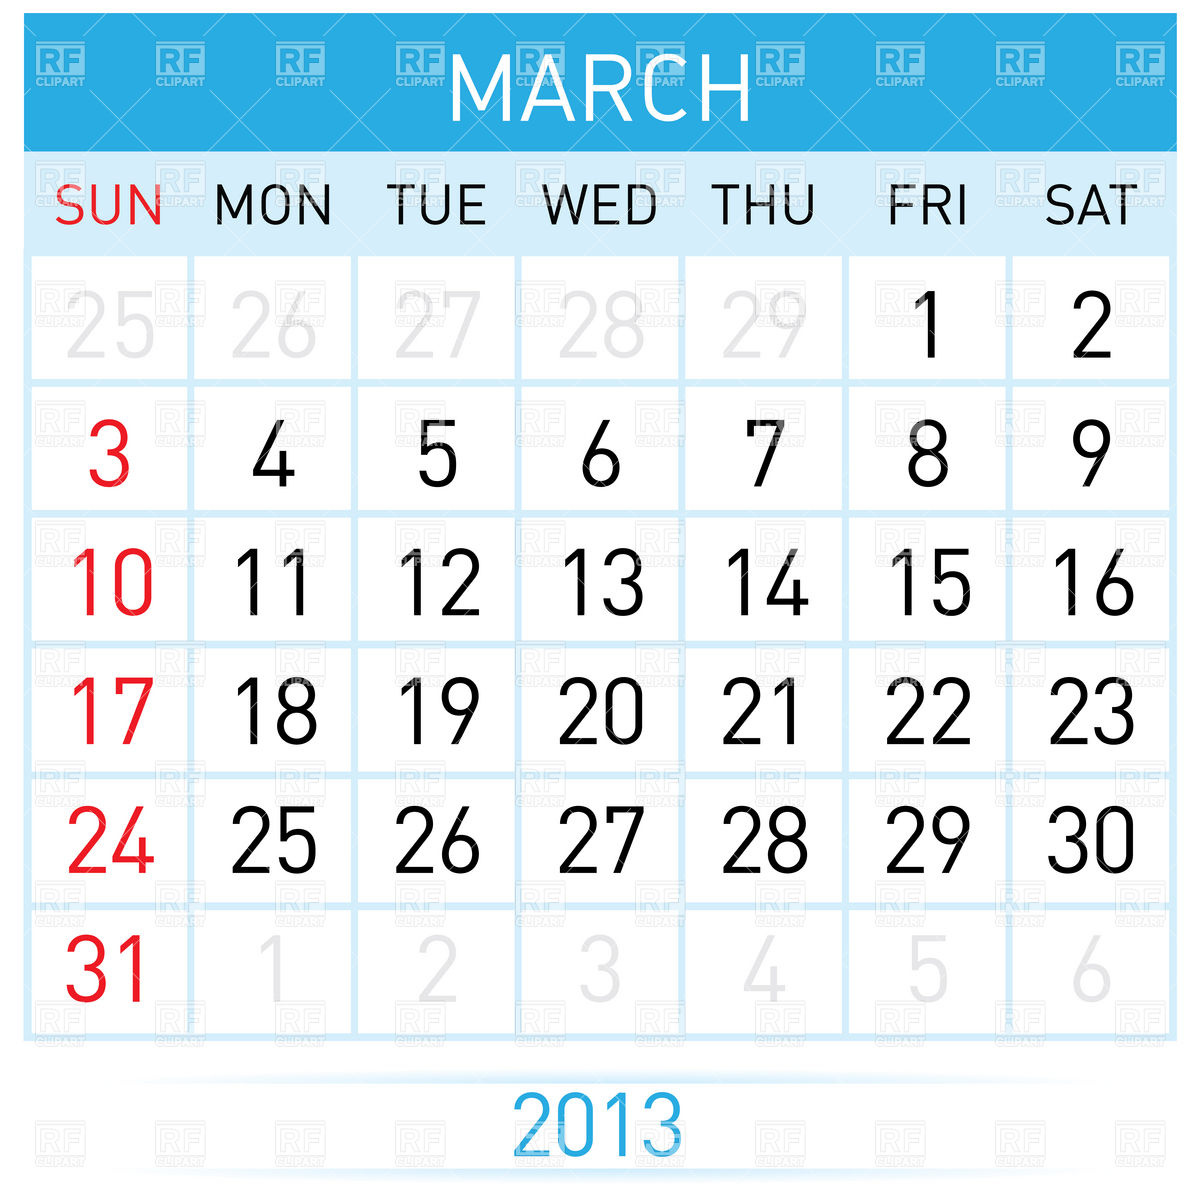 March 2013 month calendar Vector Image #7023.